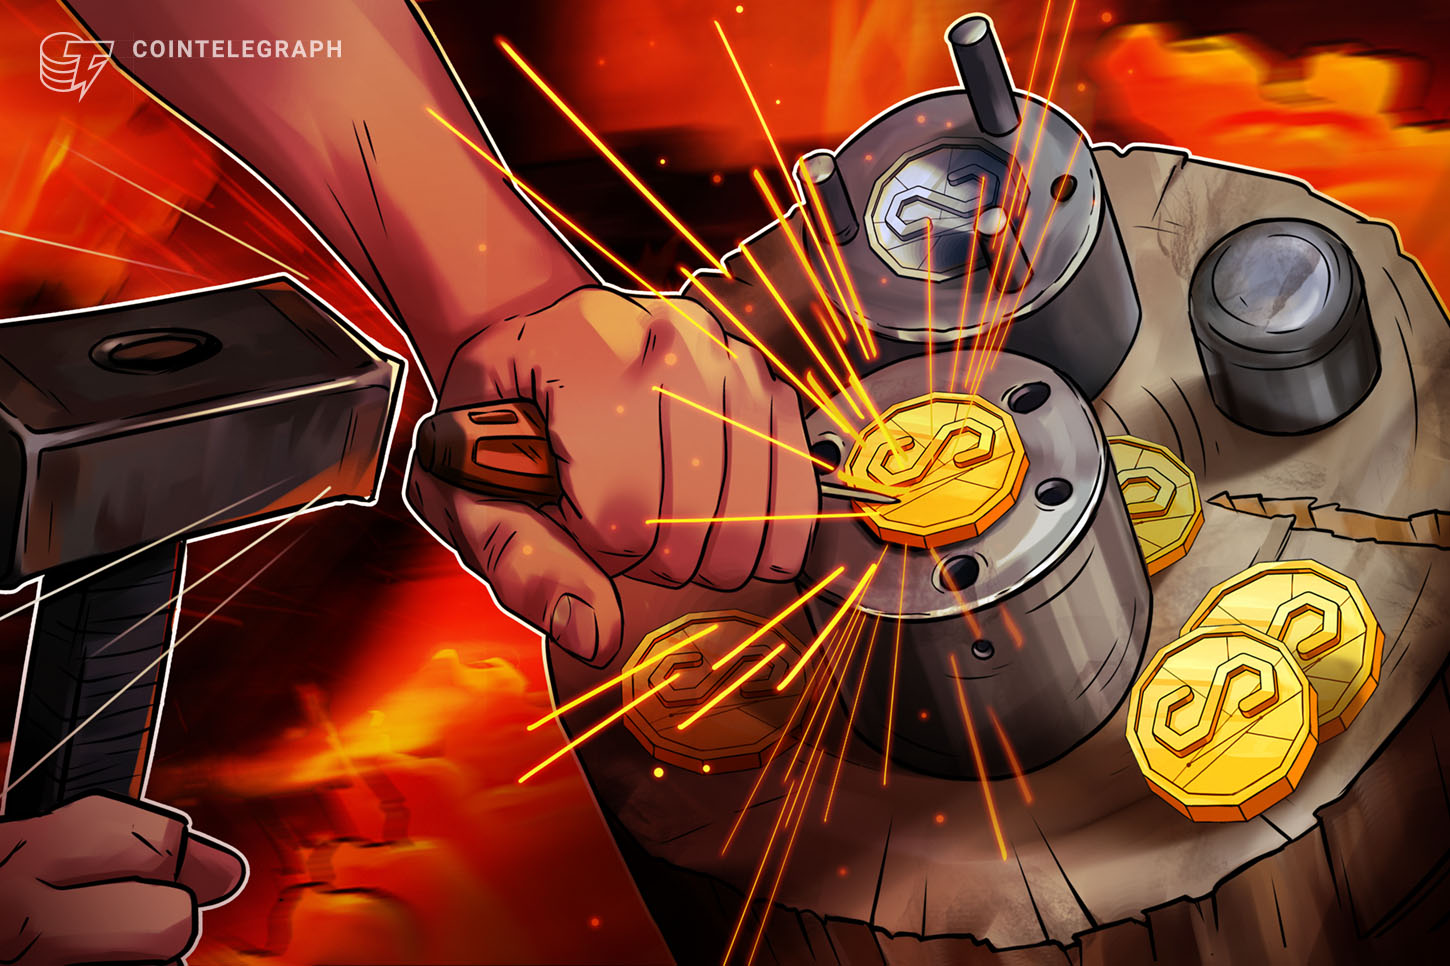 Cointelegraph Consulting: Stablecoin activity drops after May peak